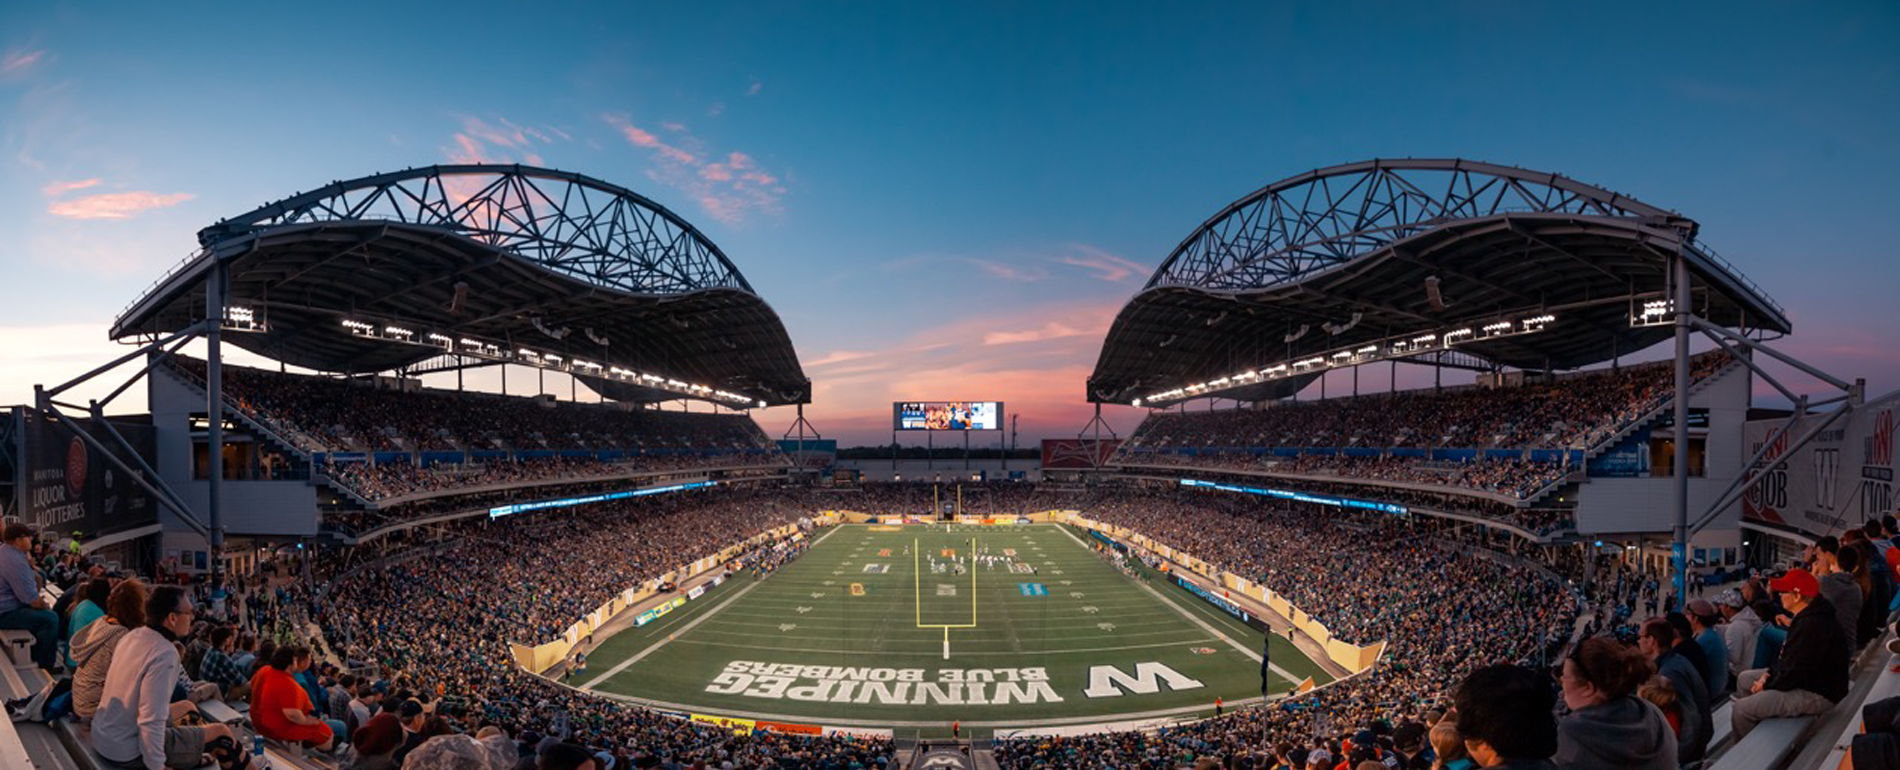 Hospitality Technology Provider, Givex, Launches Point of Sale and Loaded Ticket Partnership with Winnipeg Football Club